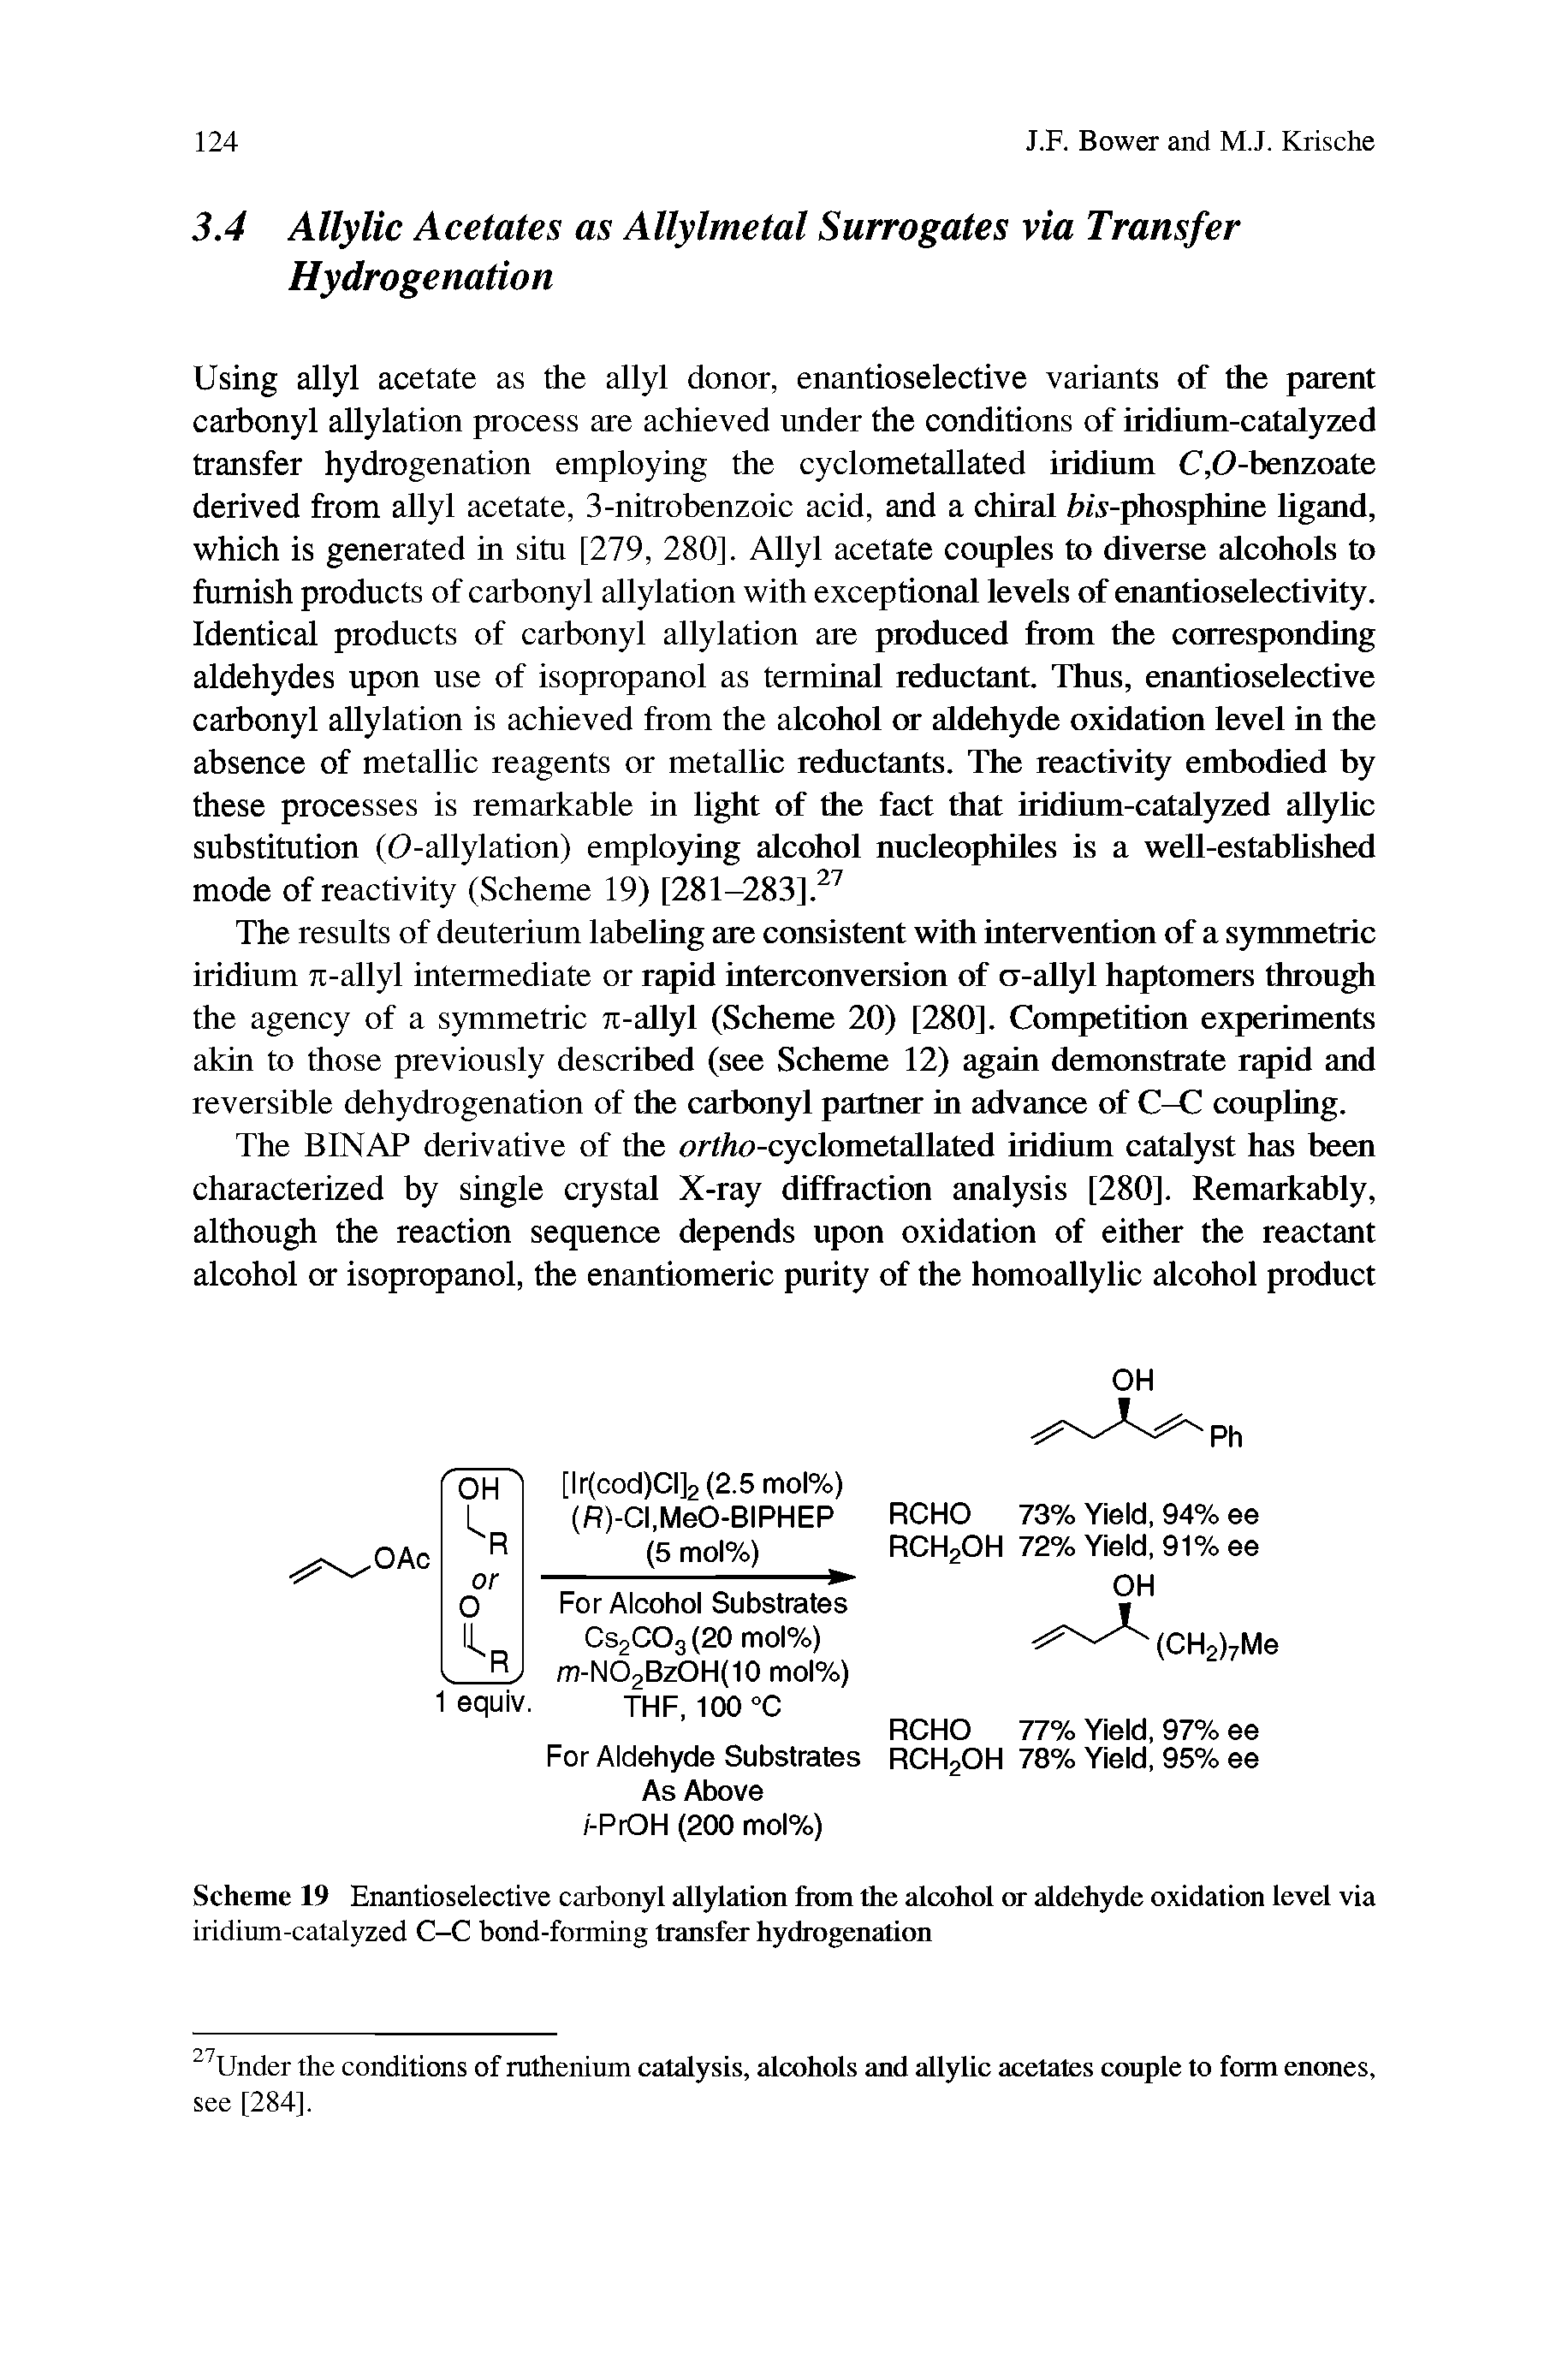 "Scheme 19 Enantioselective <a href=""/info/carbonyl_allylations"">carbonyl allylation</a> from the alcohol or <a href=""/info/aldehydes_oxidation"">aldehyde oxidation</a> level via iridium-catalyzed C-C <a href=""/info/no_bond_form"">bond-forming</a> transfer hydrogenation"